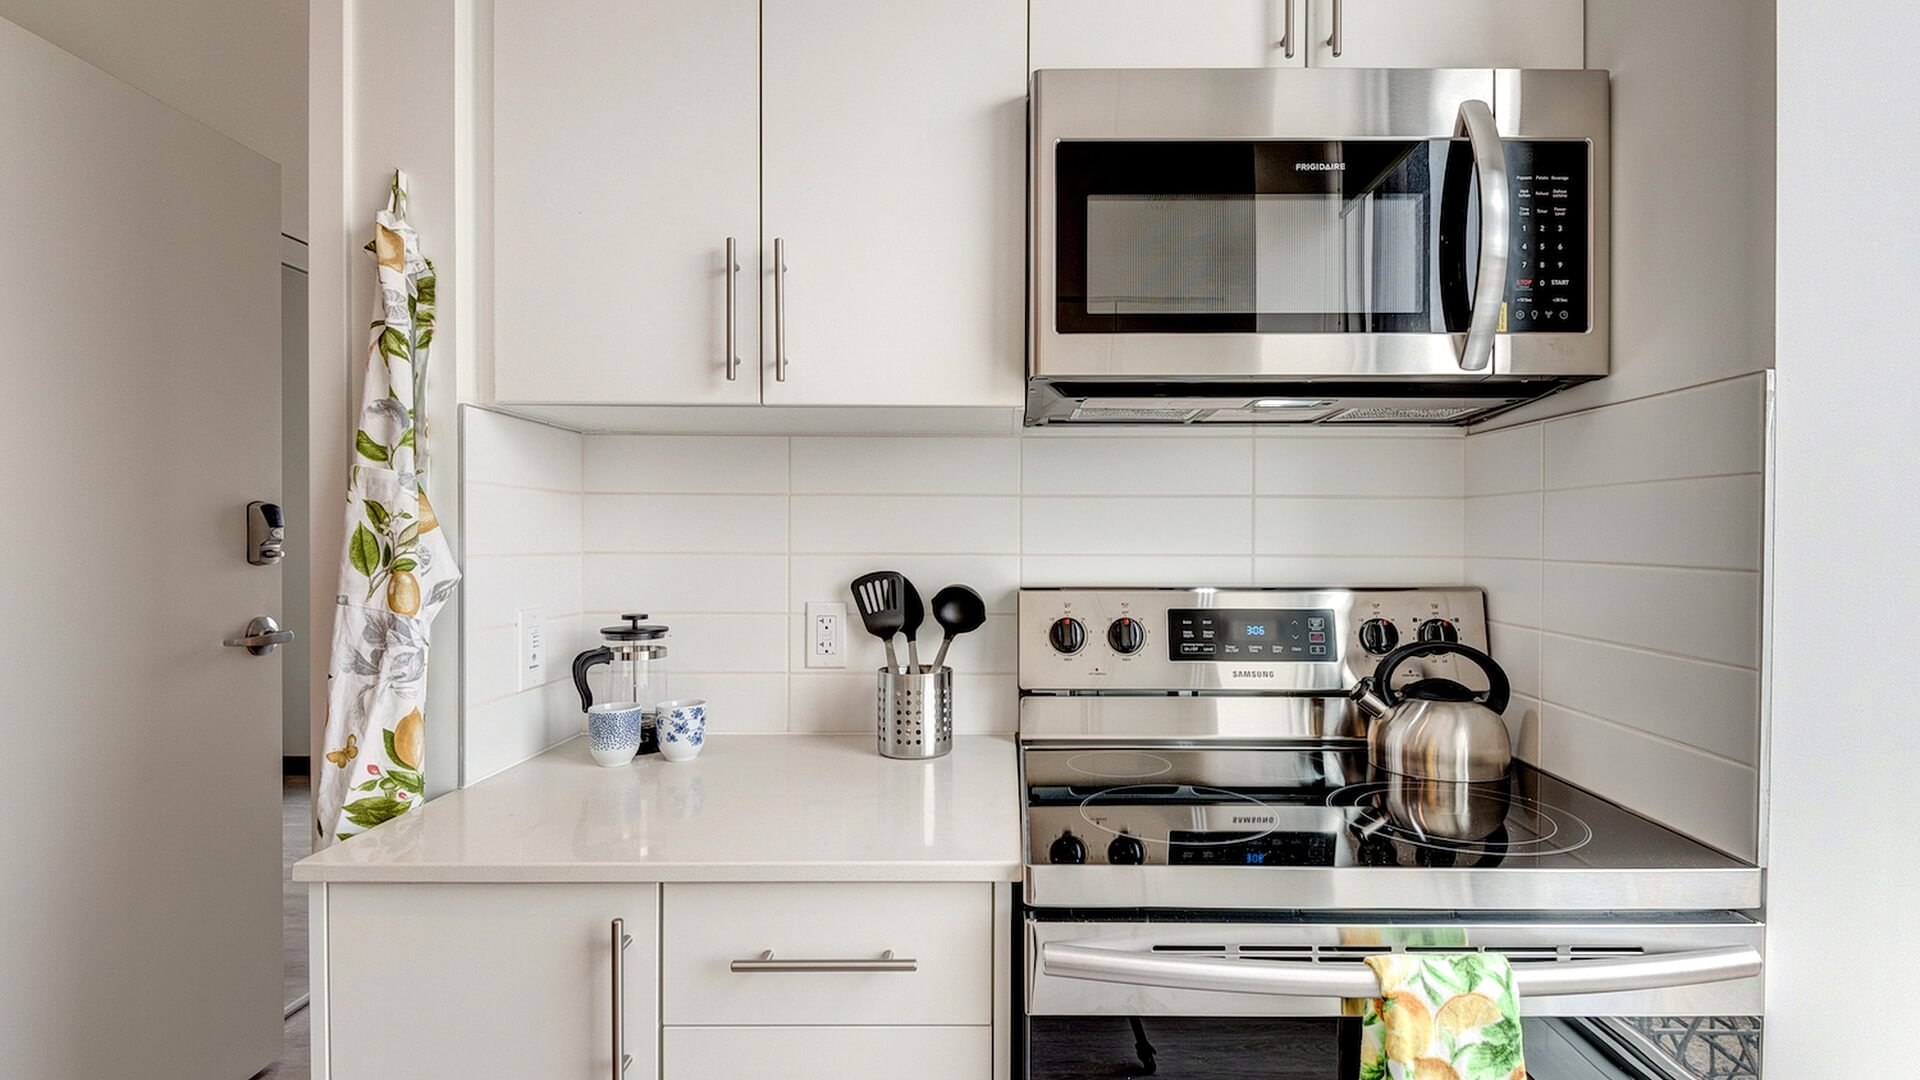 The ultimate guide to rent your first apartment